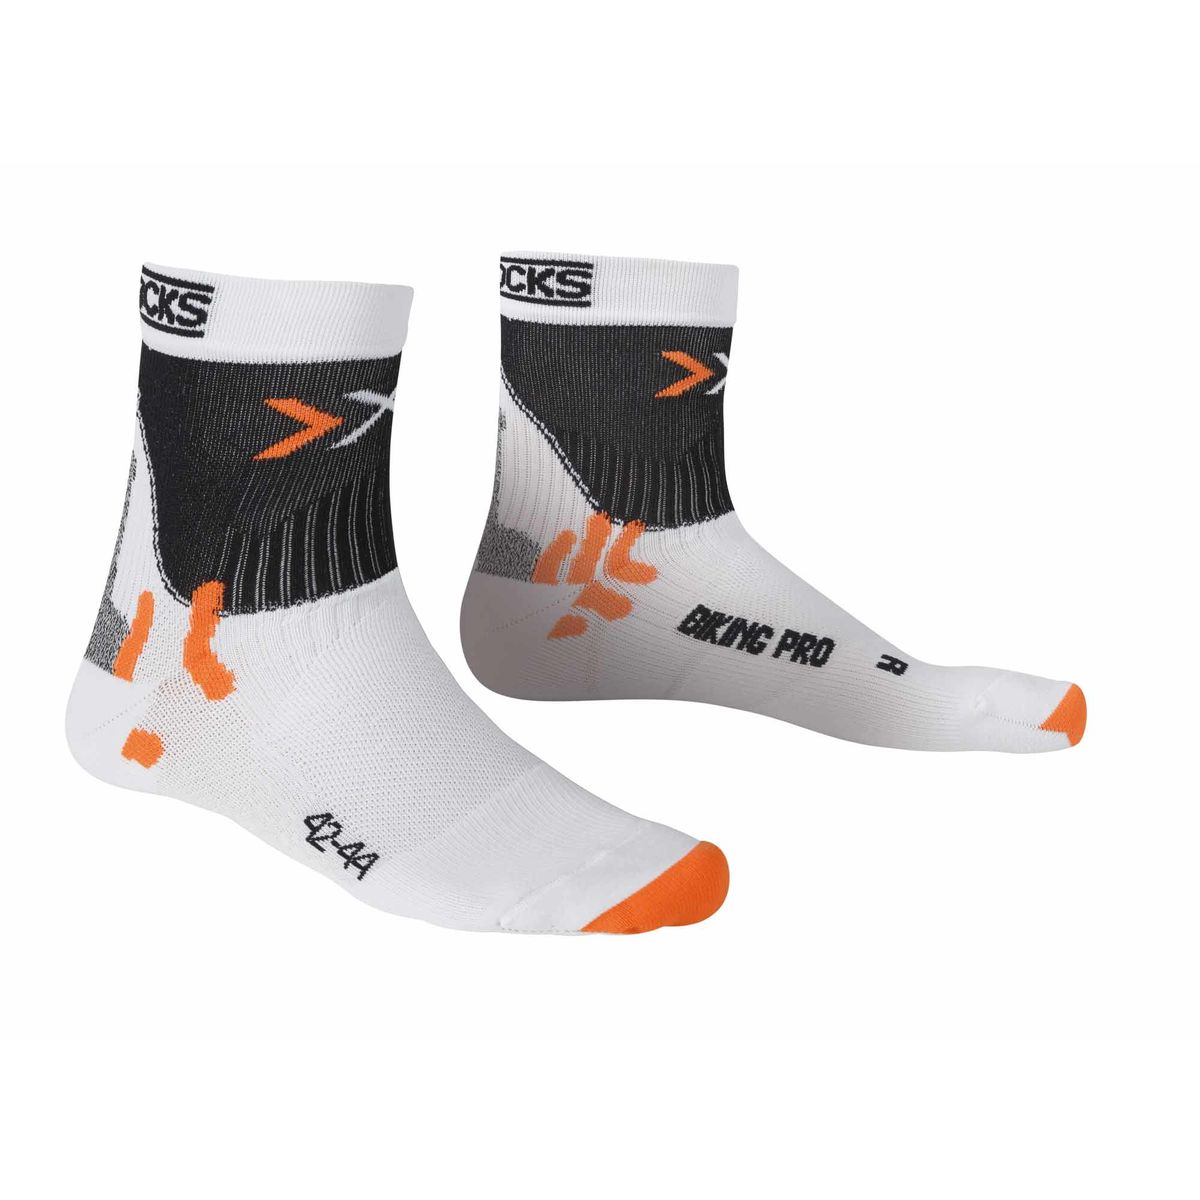 BIKING PRO LIGHT Socken